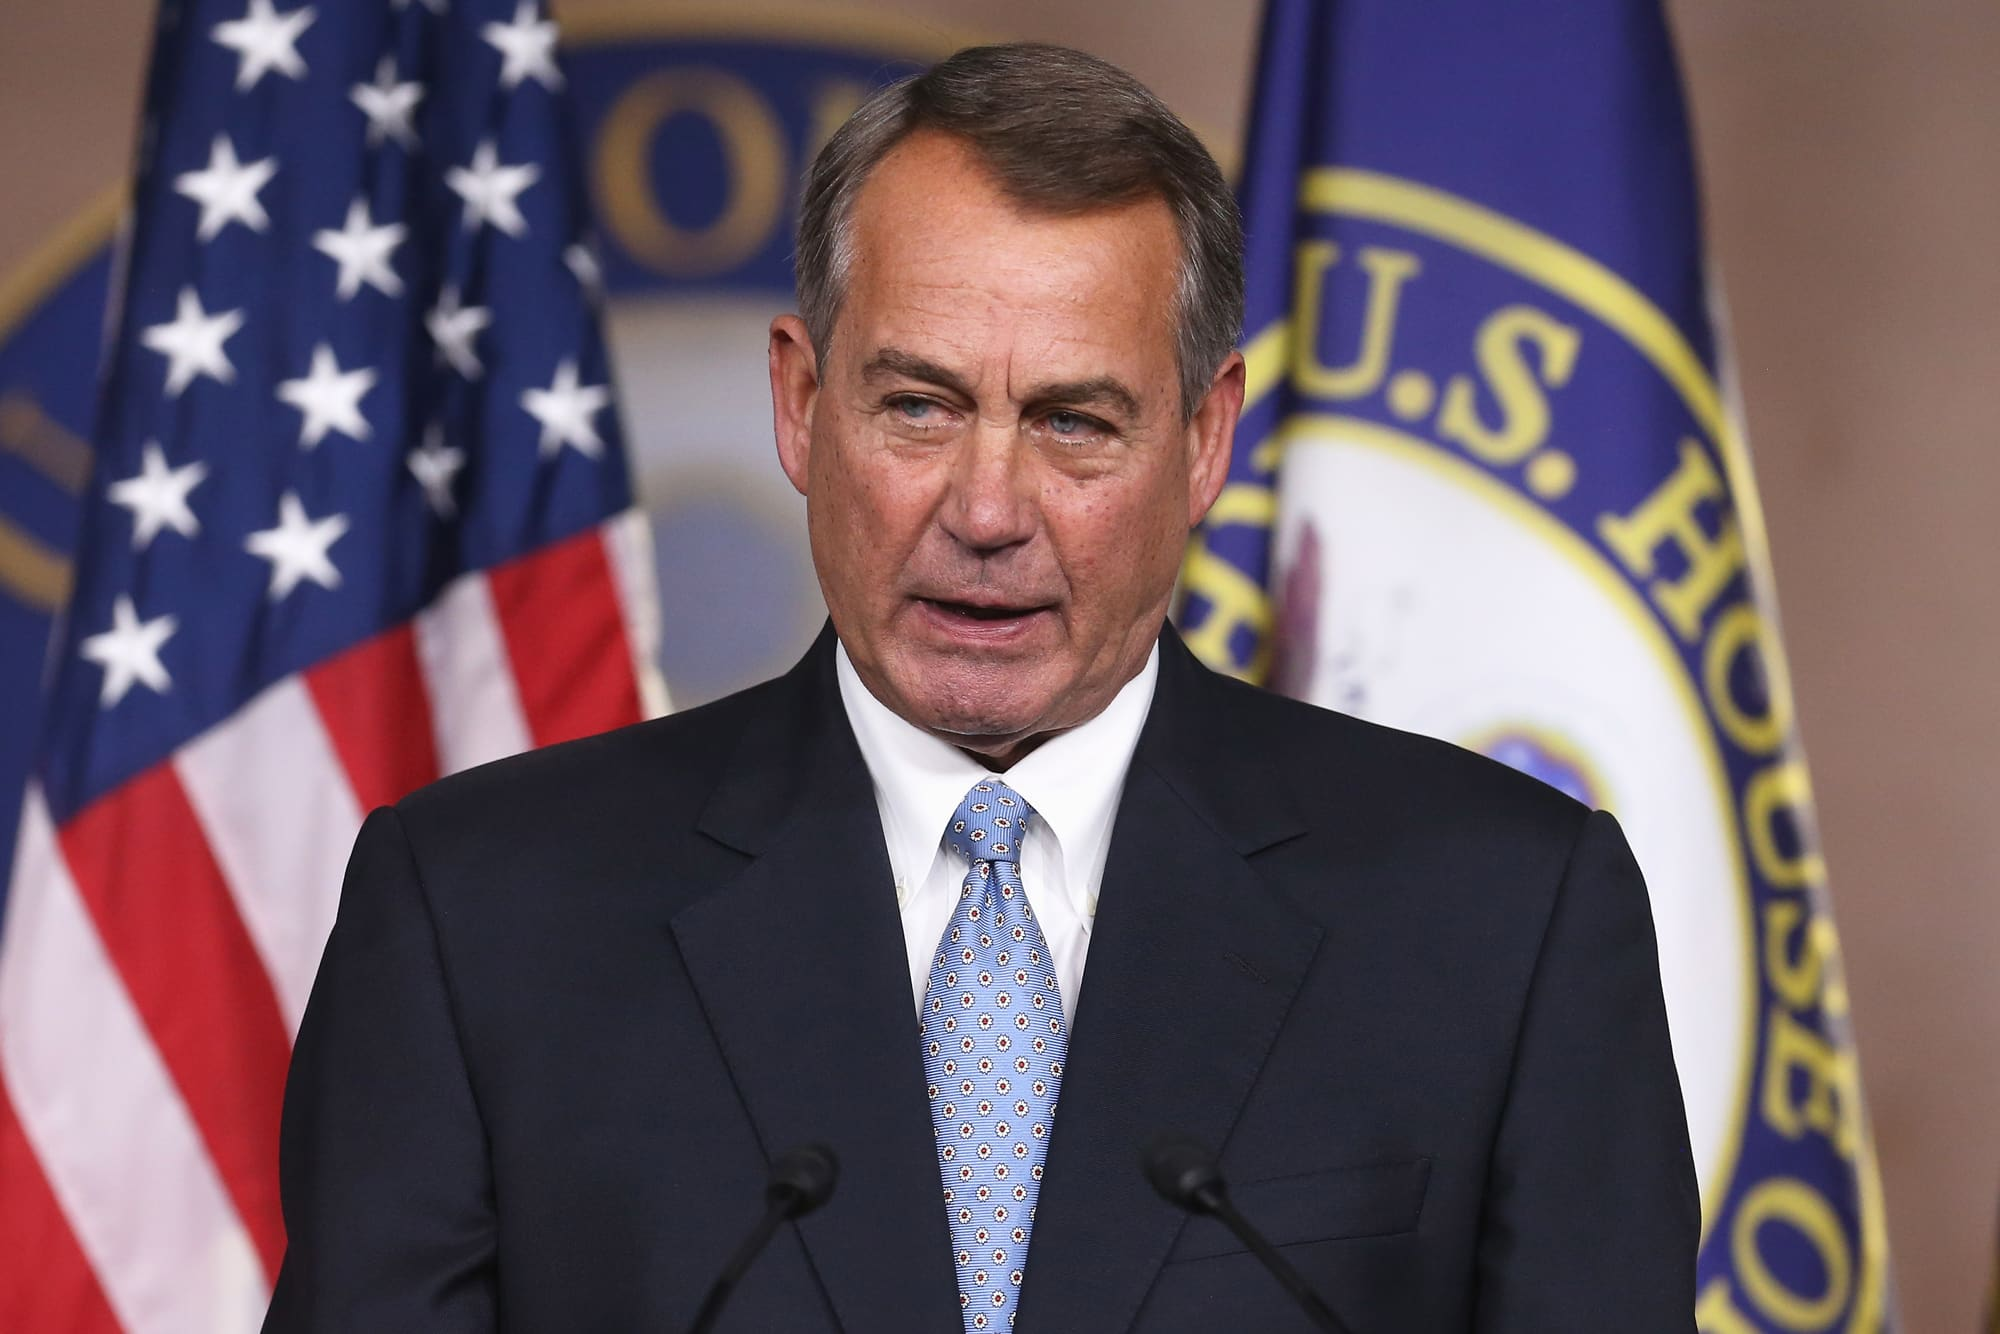 House Speaker John Boehner (R-OH) speaks to the media during a news conference at the U.S. Capitol, November 6, 2014 in Washington, DC.